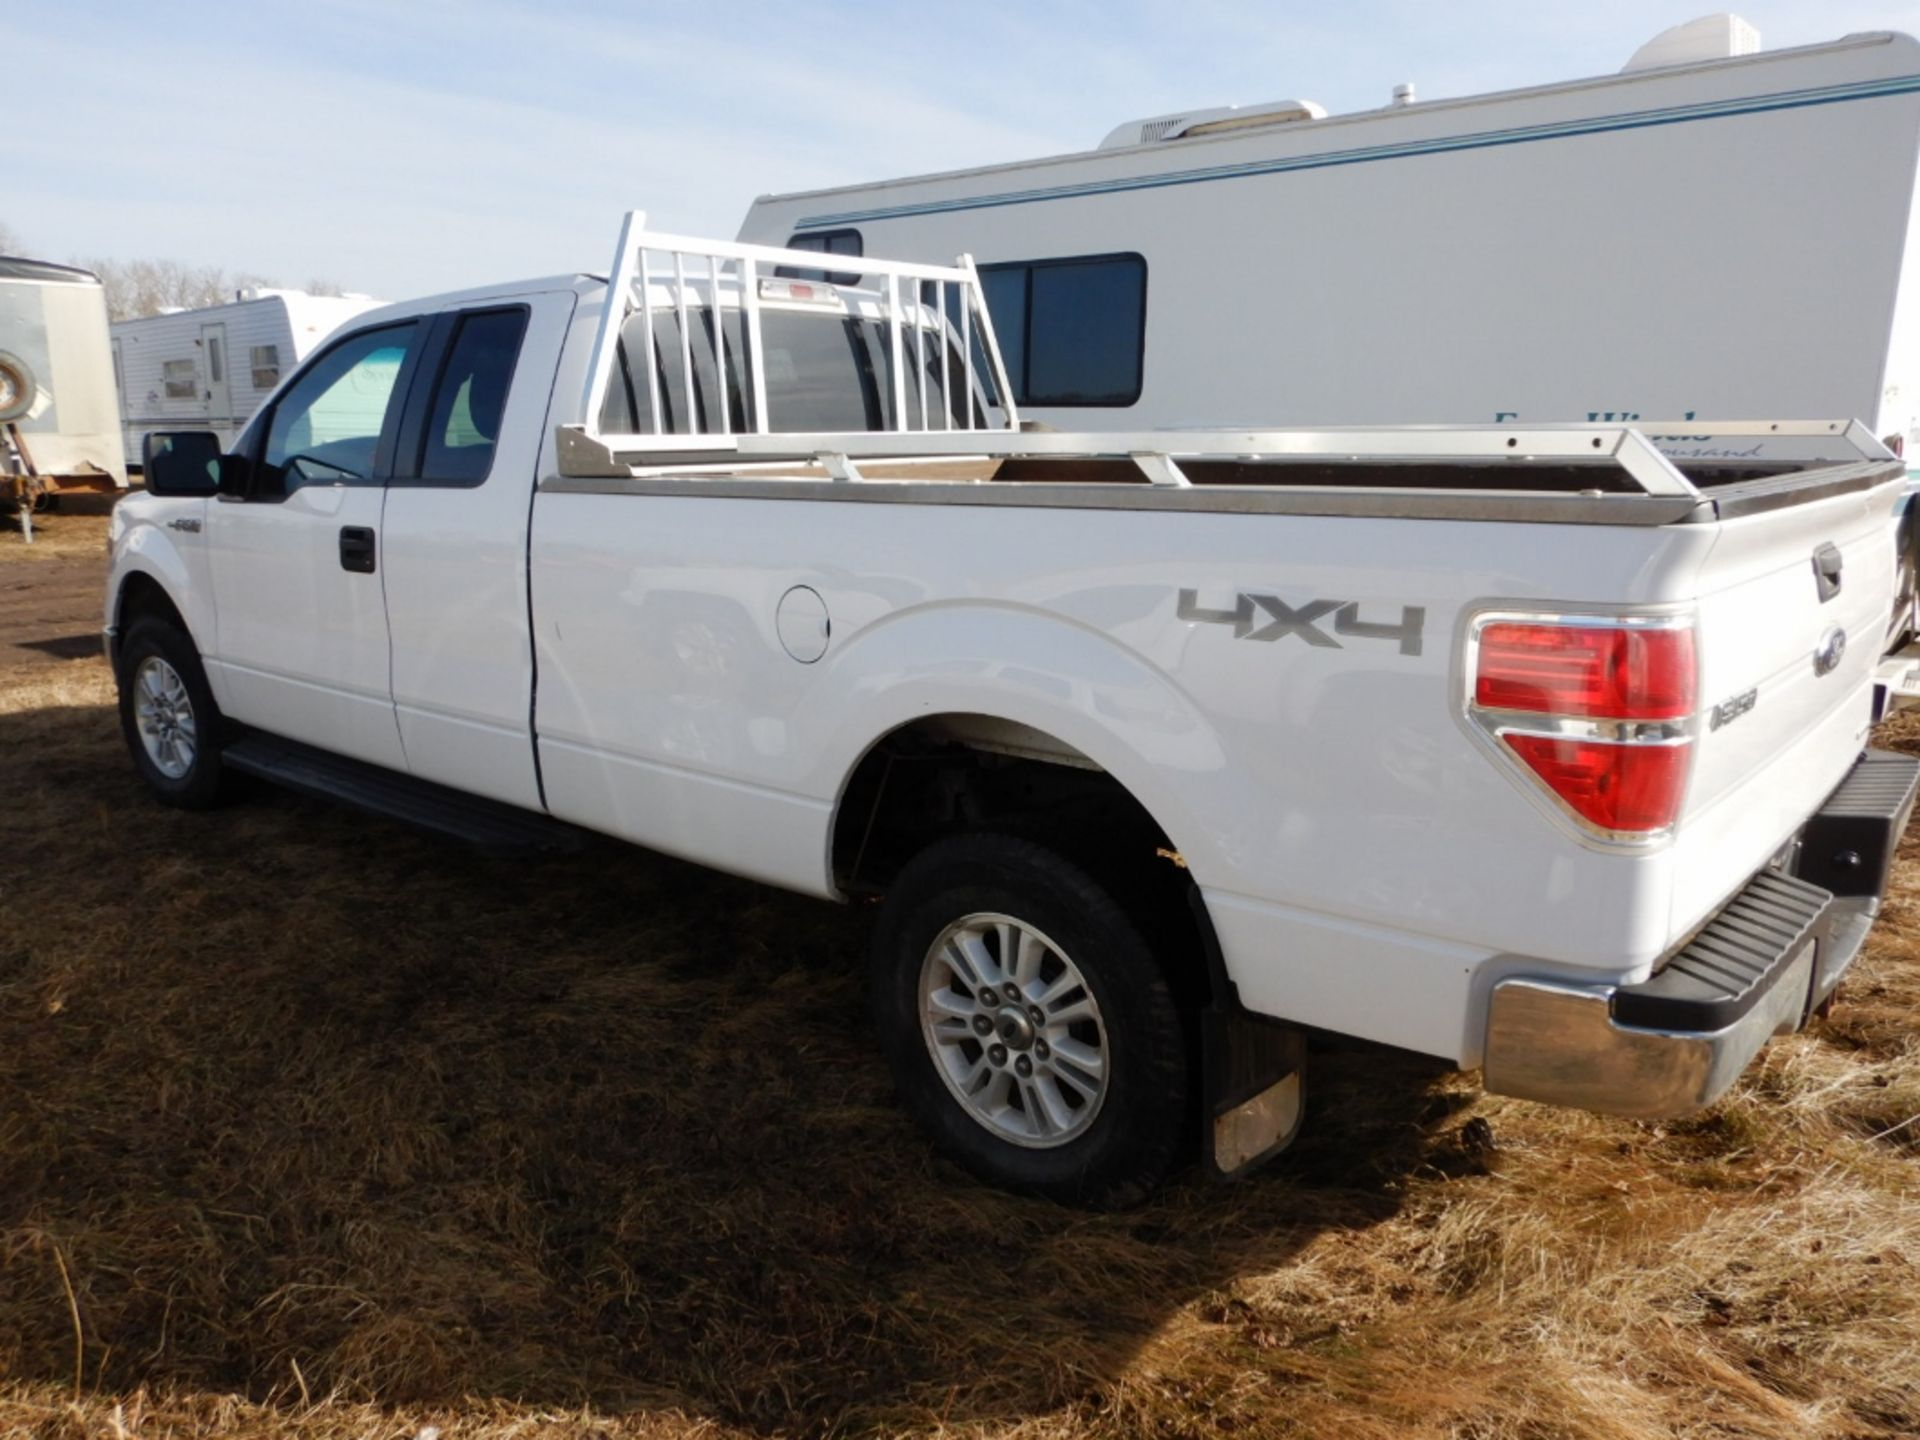 06/2014 FORD F150 XLT 4X4 EXTENDED CAB LONG BOX PICKUP W/BOX RAILS & HEAD ACHE RACK, AT, V8-GAS S/ - Image 4 of 7